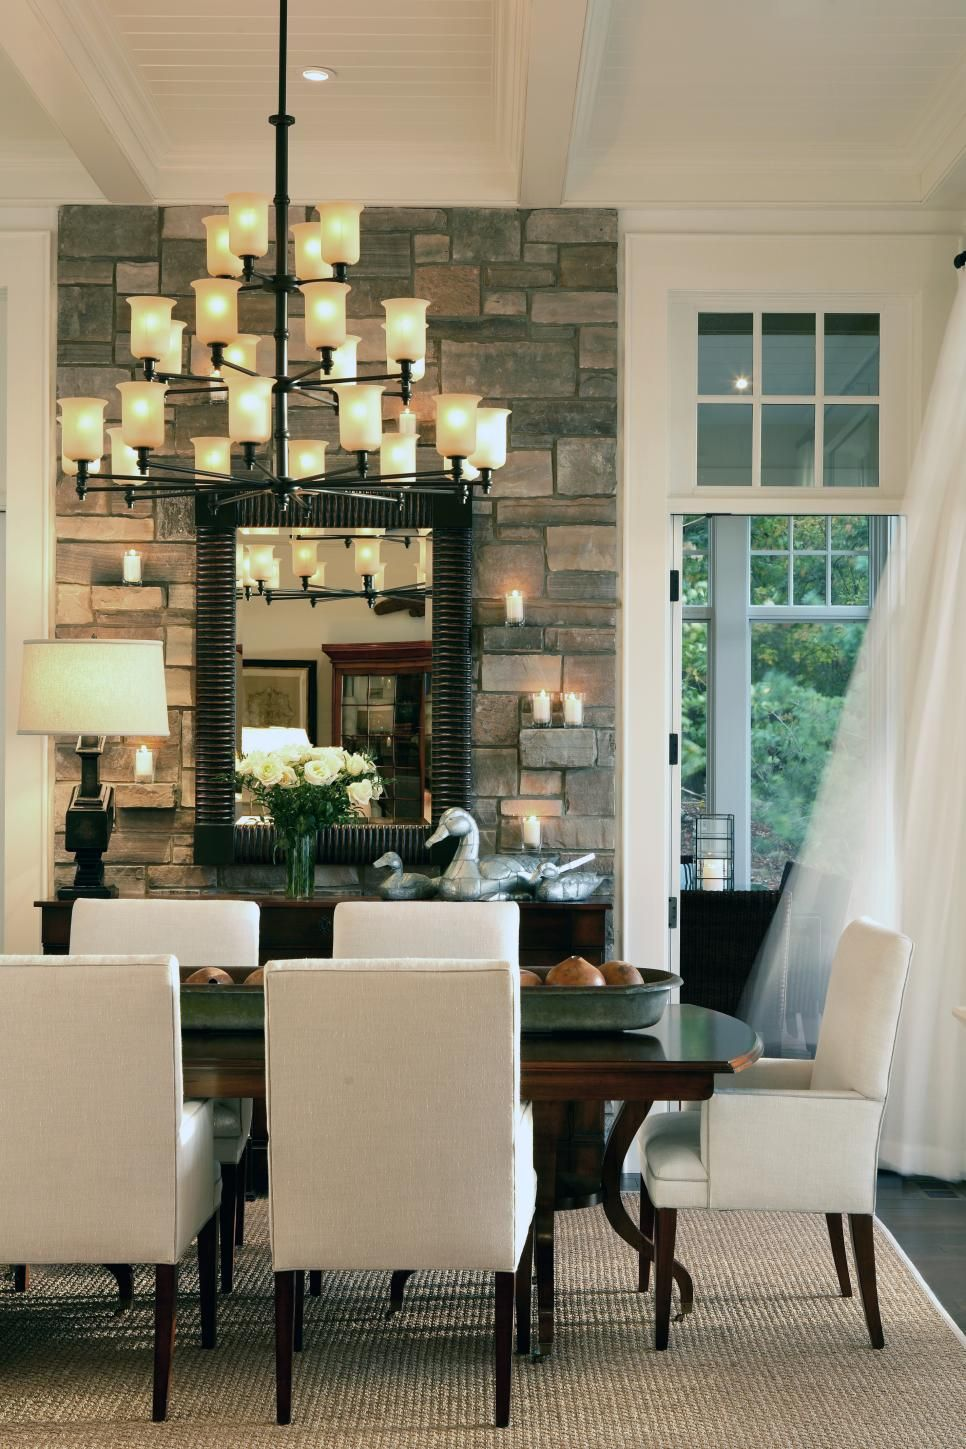 Select stones are pulled forward in the stone accent wall